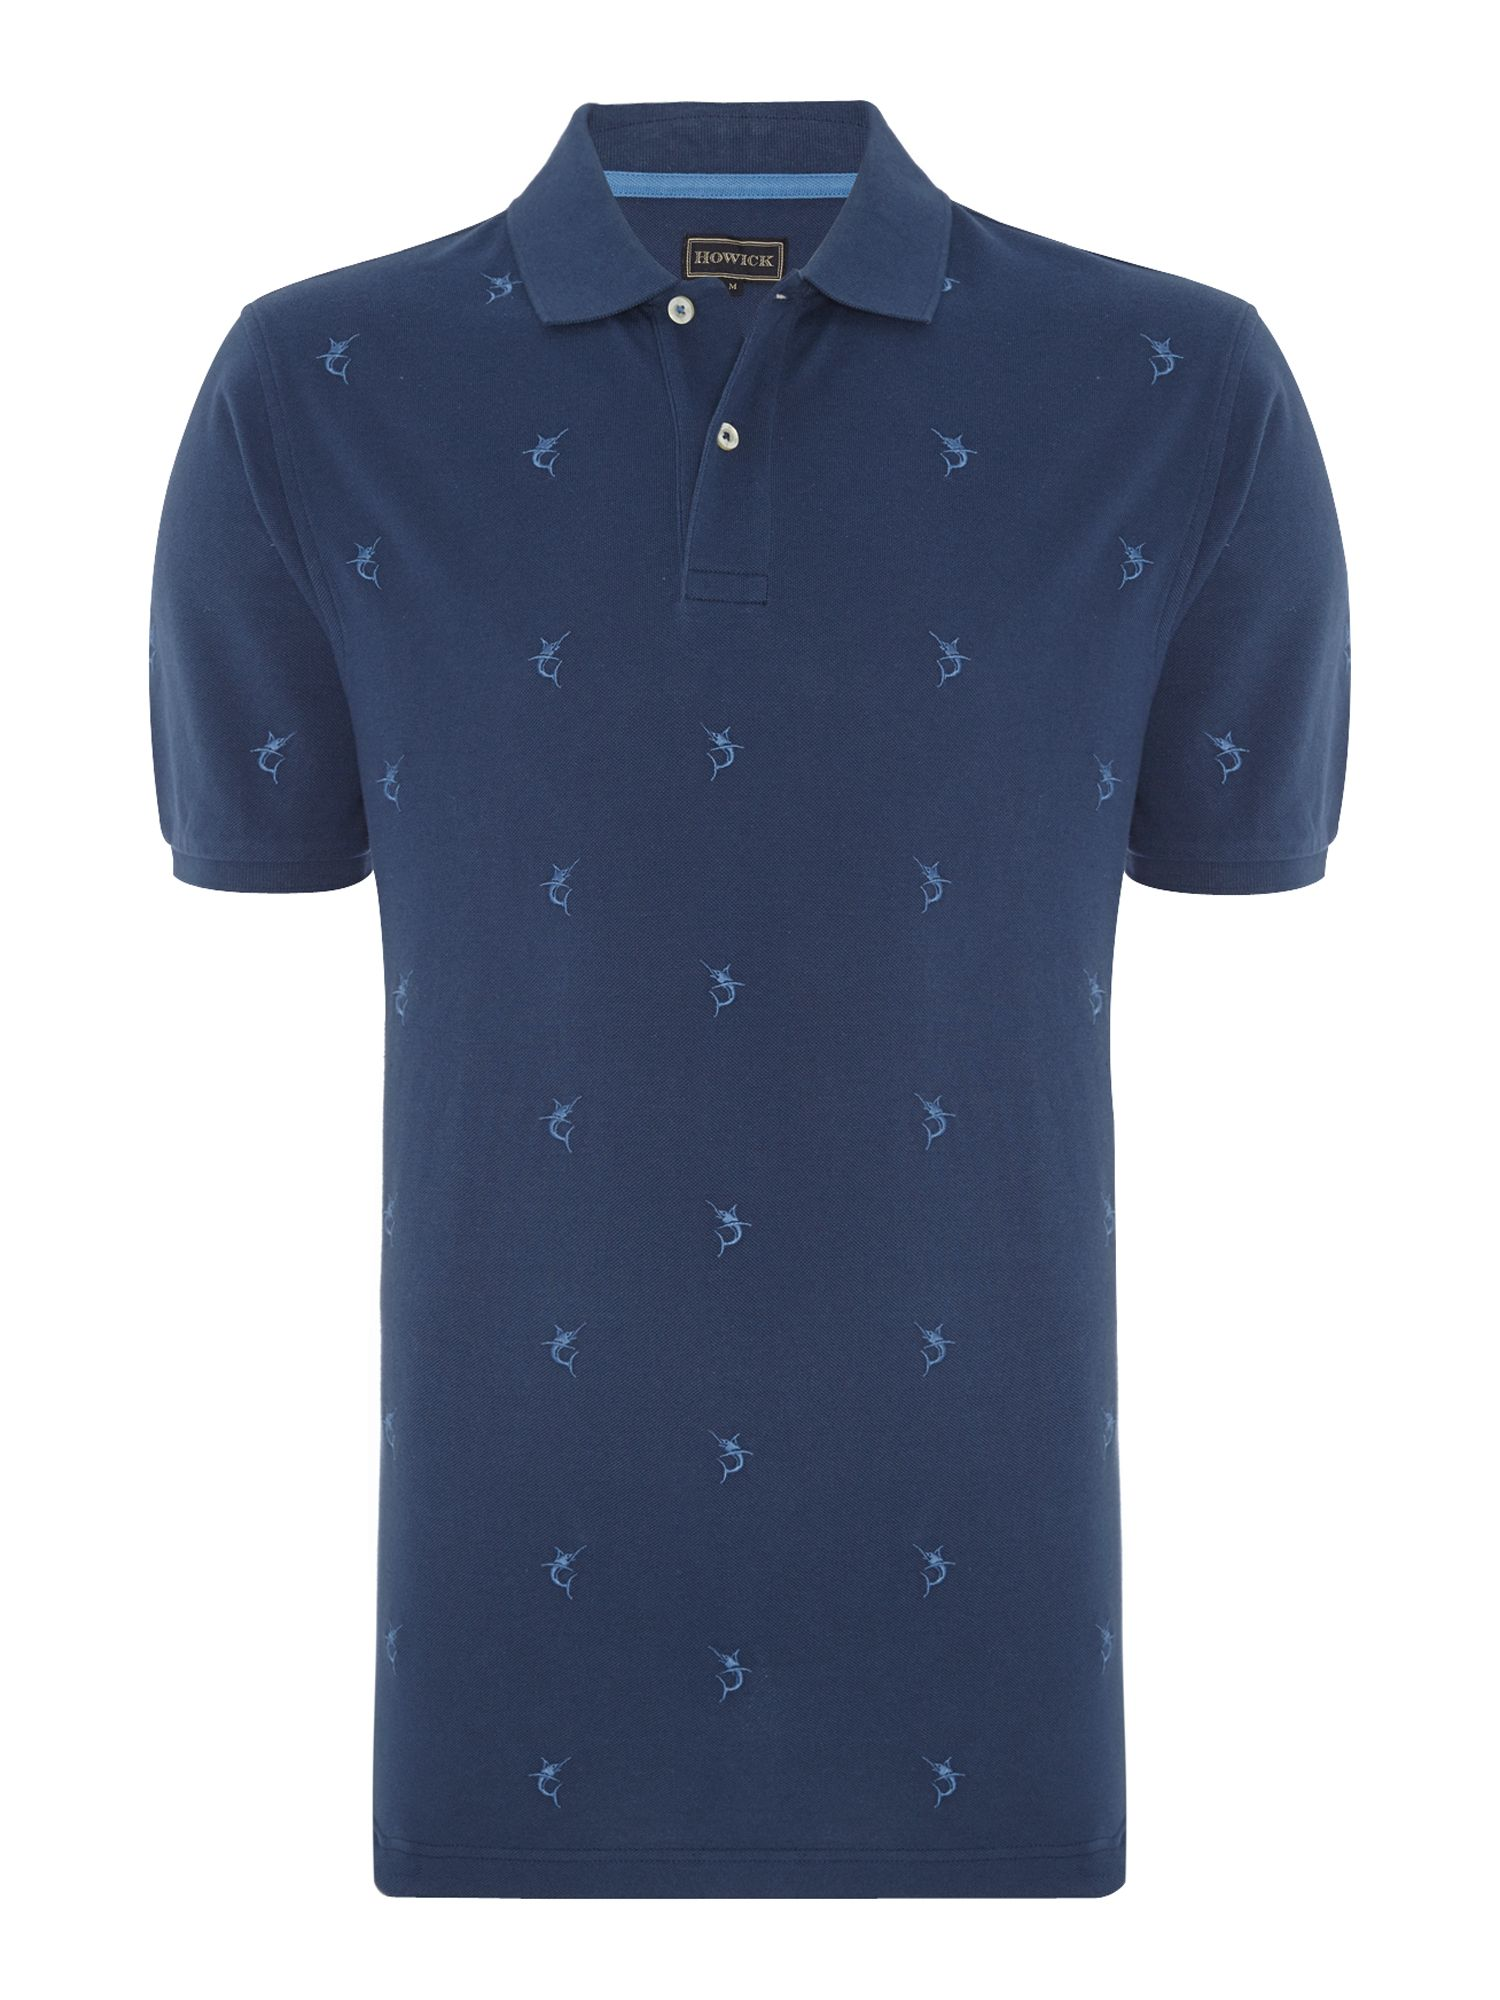 fishermans pique short sleeve polo